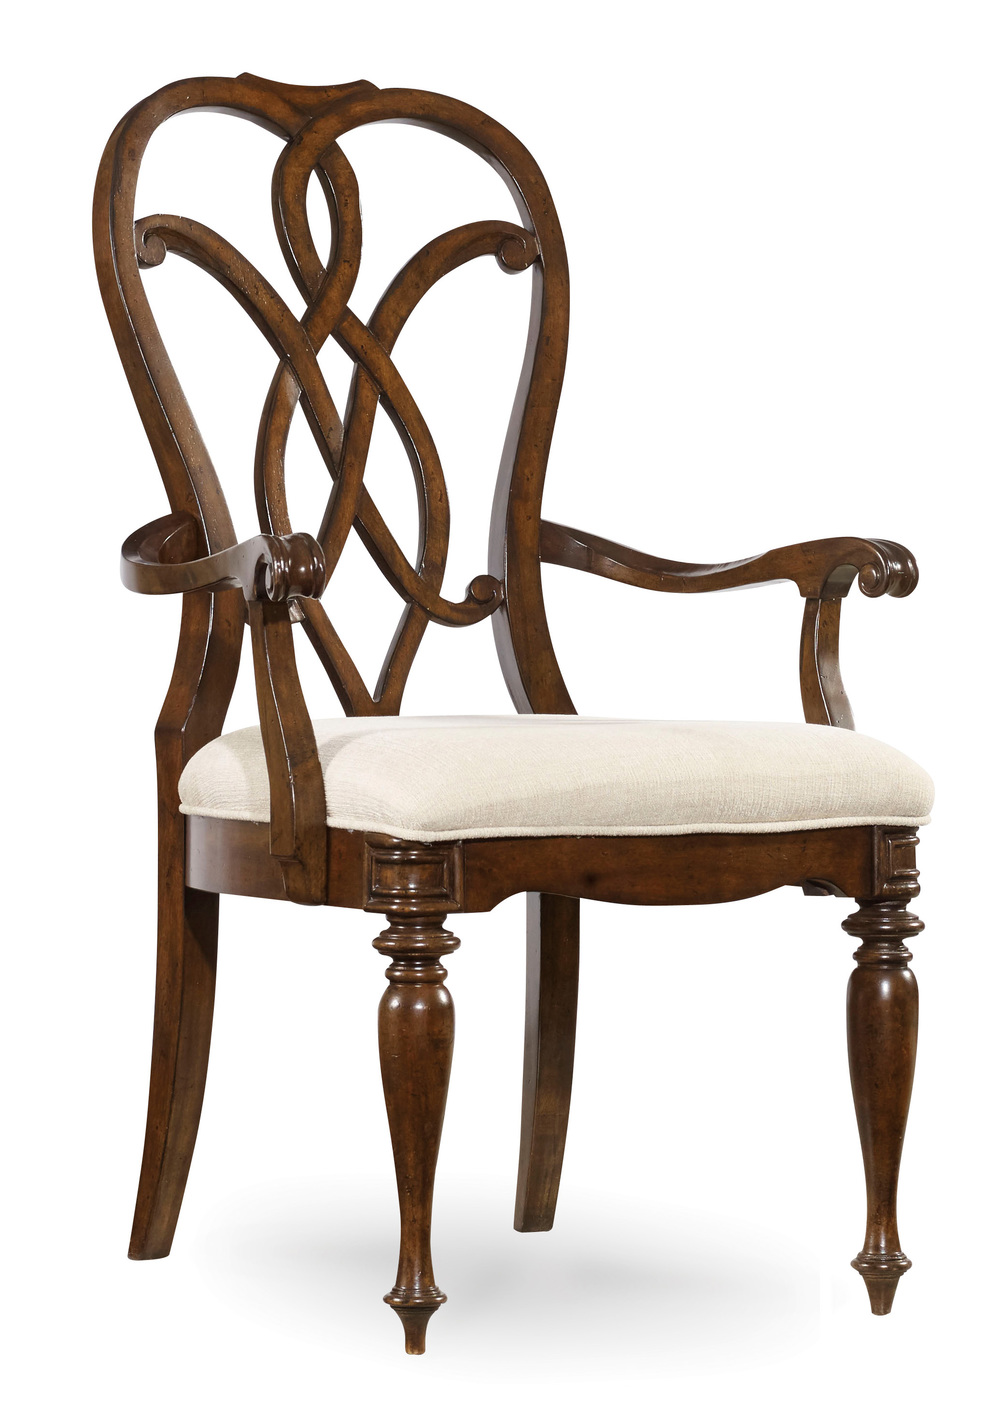 HOOKER FURNITURE CO - Leesburg Splatback Arm Chair